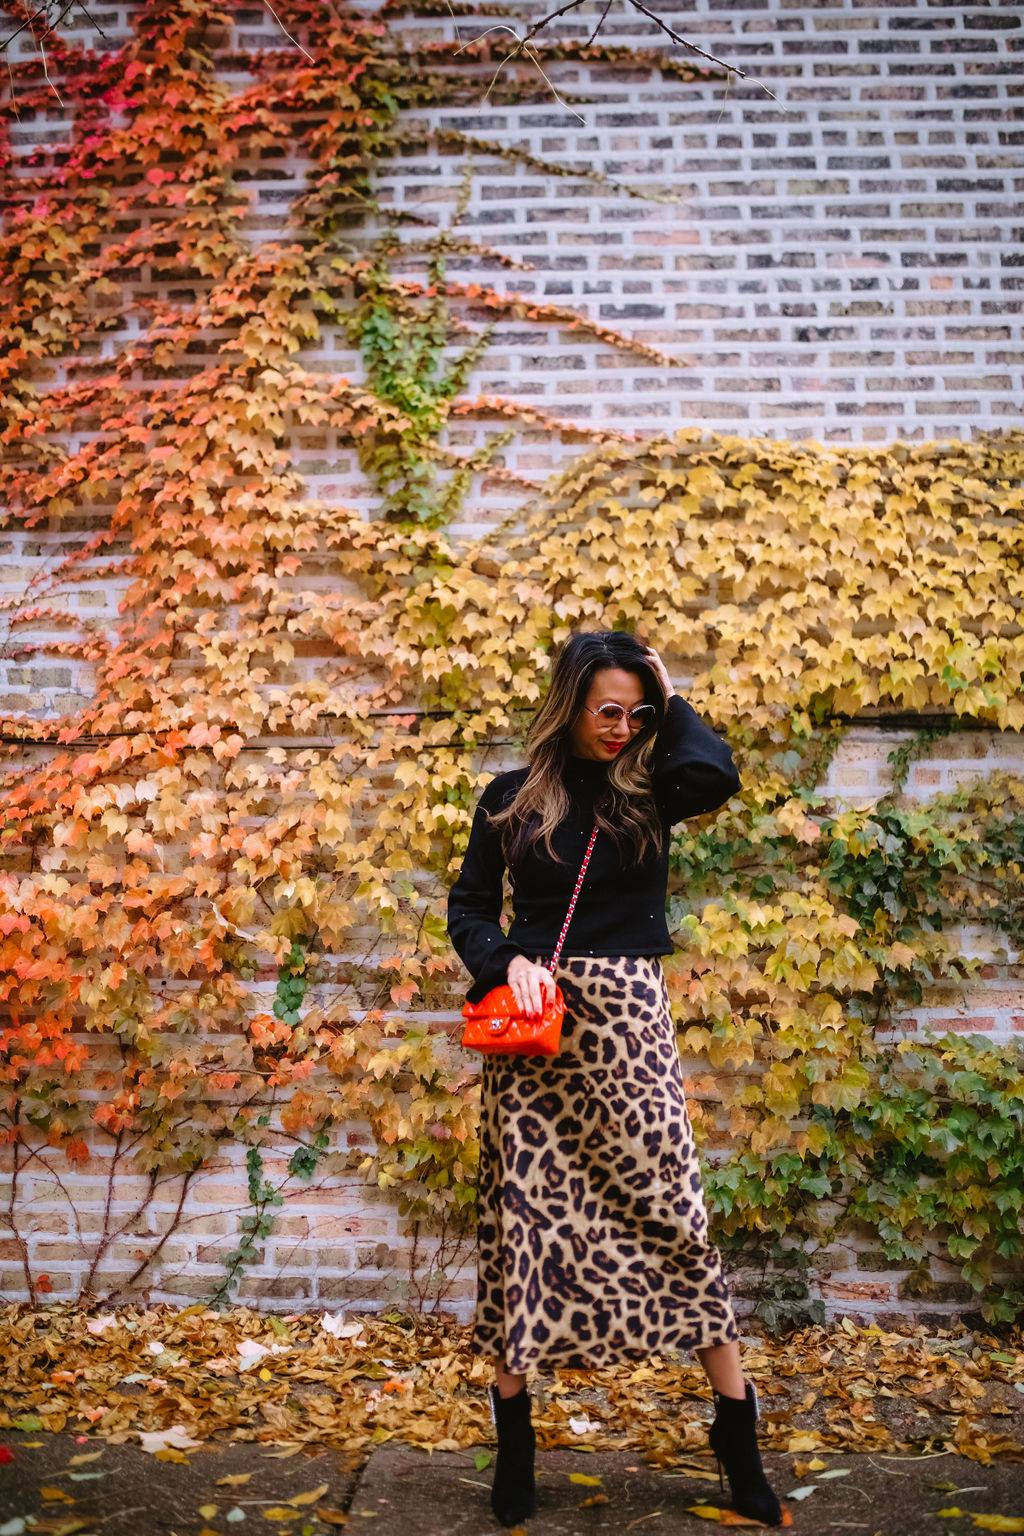 NBD Jeff Sweater, Jennifer Worman, Red Soles and Red Wine, revolve finds under $150, sweaters from revolve all under $150, Fall styles, fall outfit ideas, sweaters under $150, best sweaters under $150, 9 must-have sweaters under $150, revolve babe, fall 2019 must haves, fall 2019 style, mom style, chicago blogger